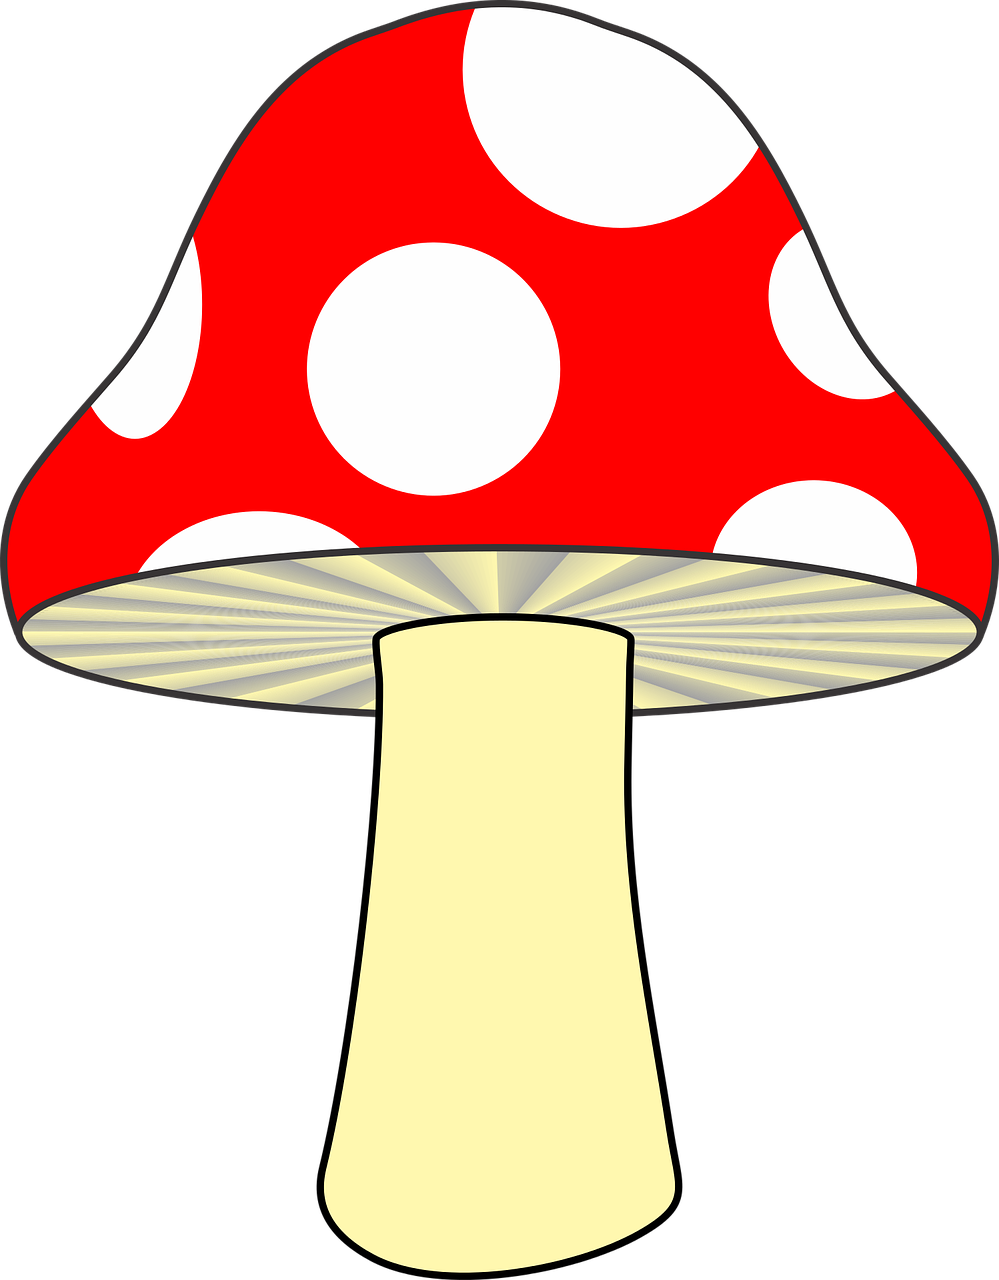 Fungus drawing nature. Forest mushroom red woods